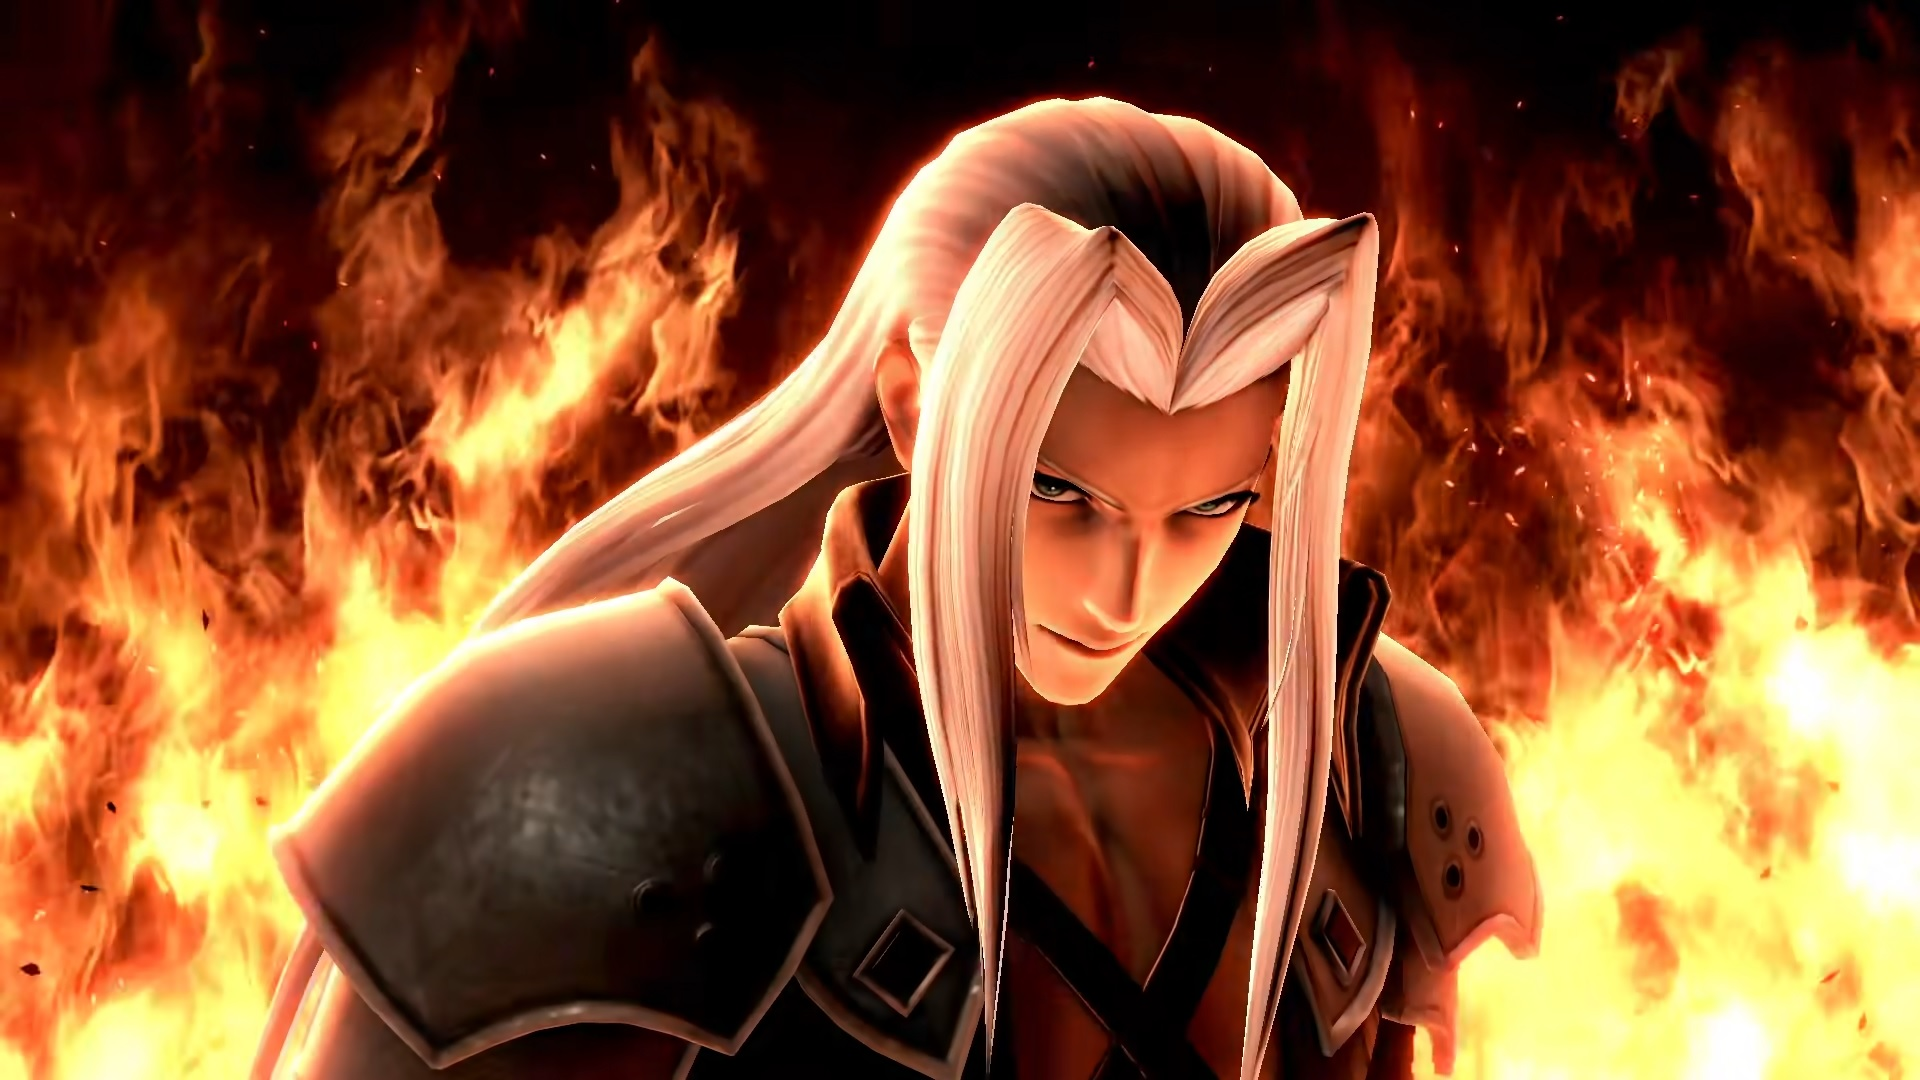 One-Winged Angel Sephiroth Joins Super Smash Bros. Ultimate as DLC Character